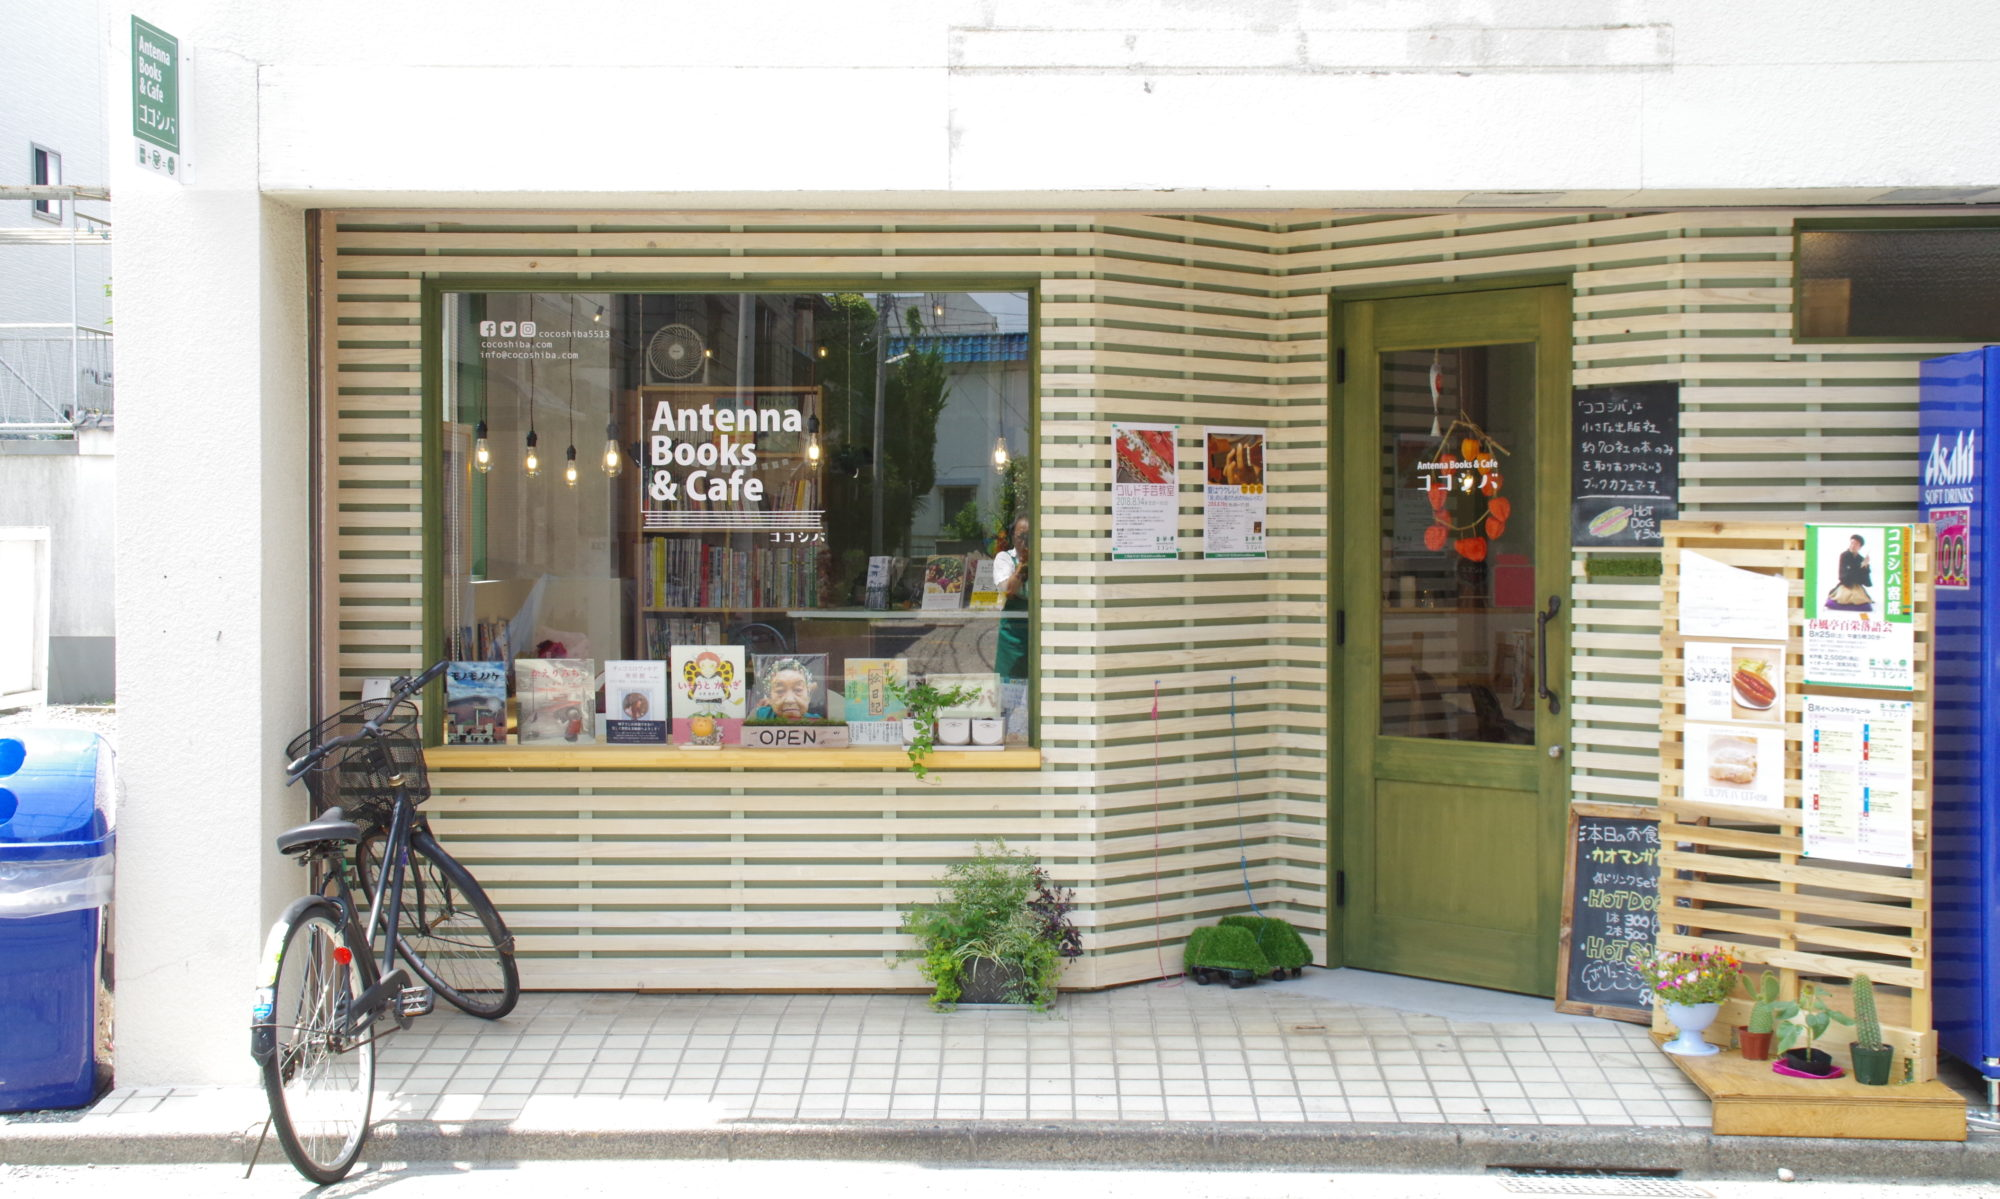 Antenna Books & Cafe ココシバ